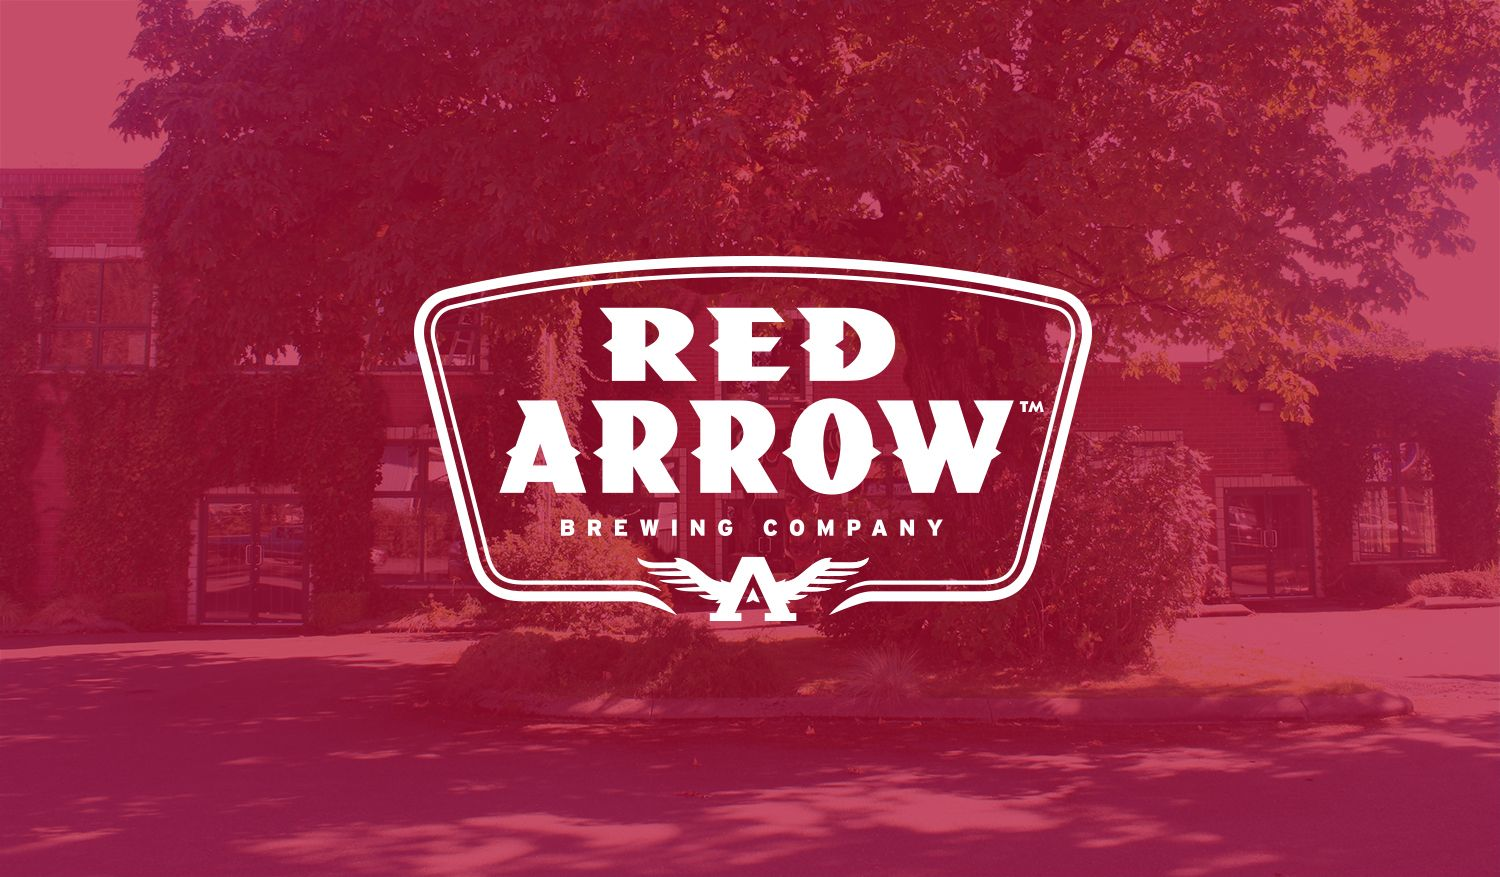 Red Arrow Brewing Company Duncan Bc Brewing Red Arrow Vancouver Island